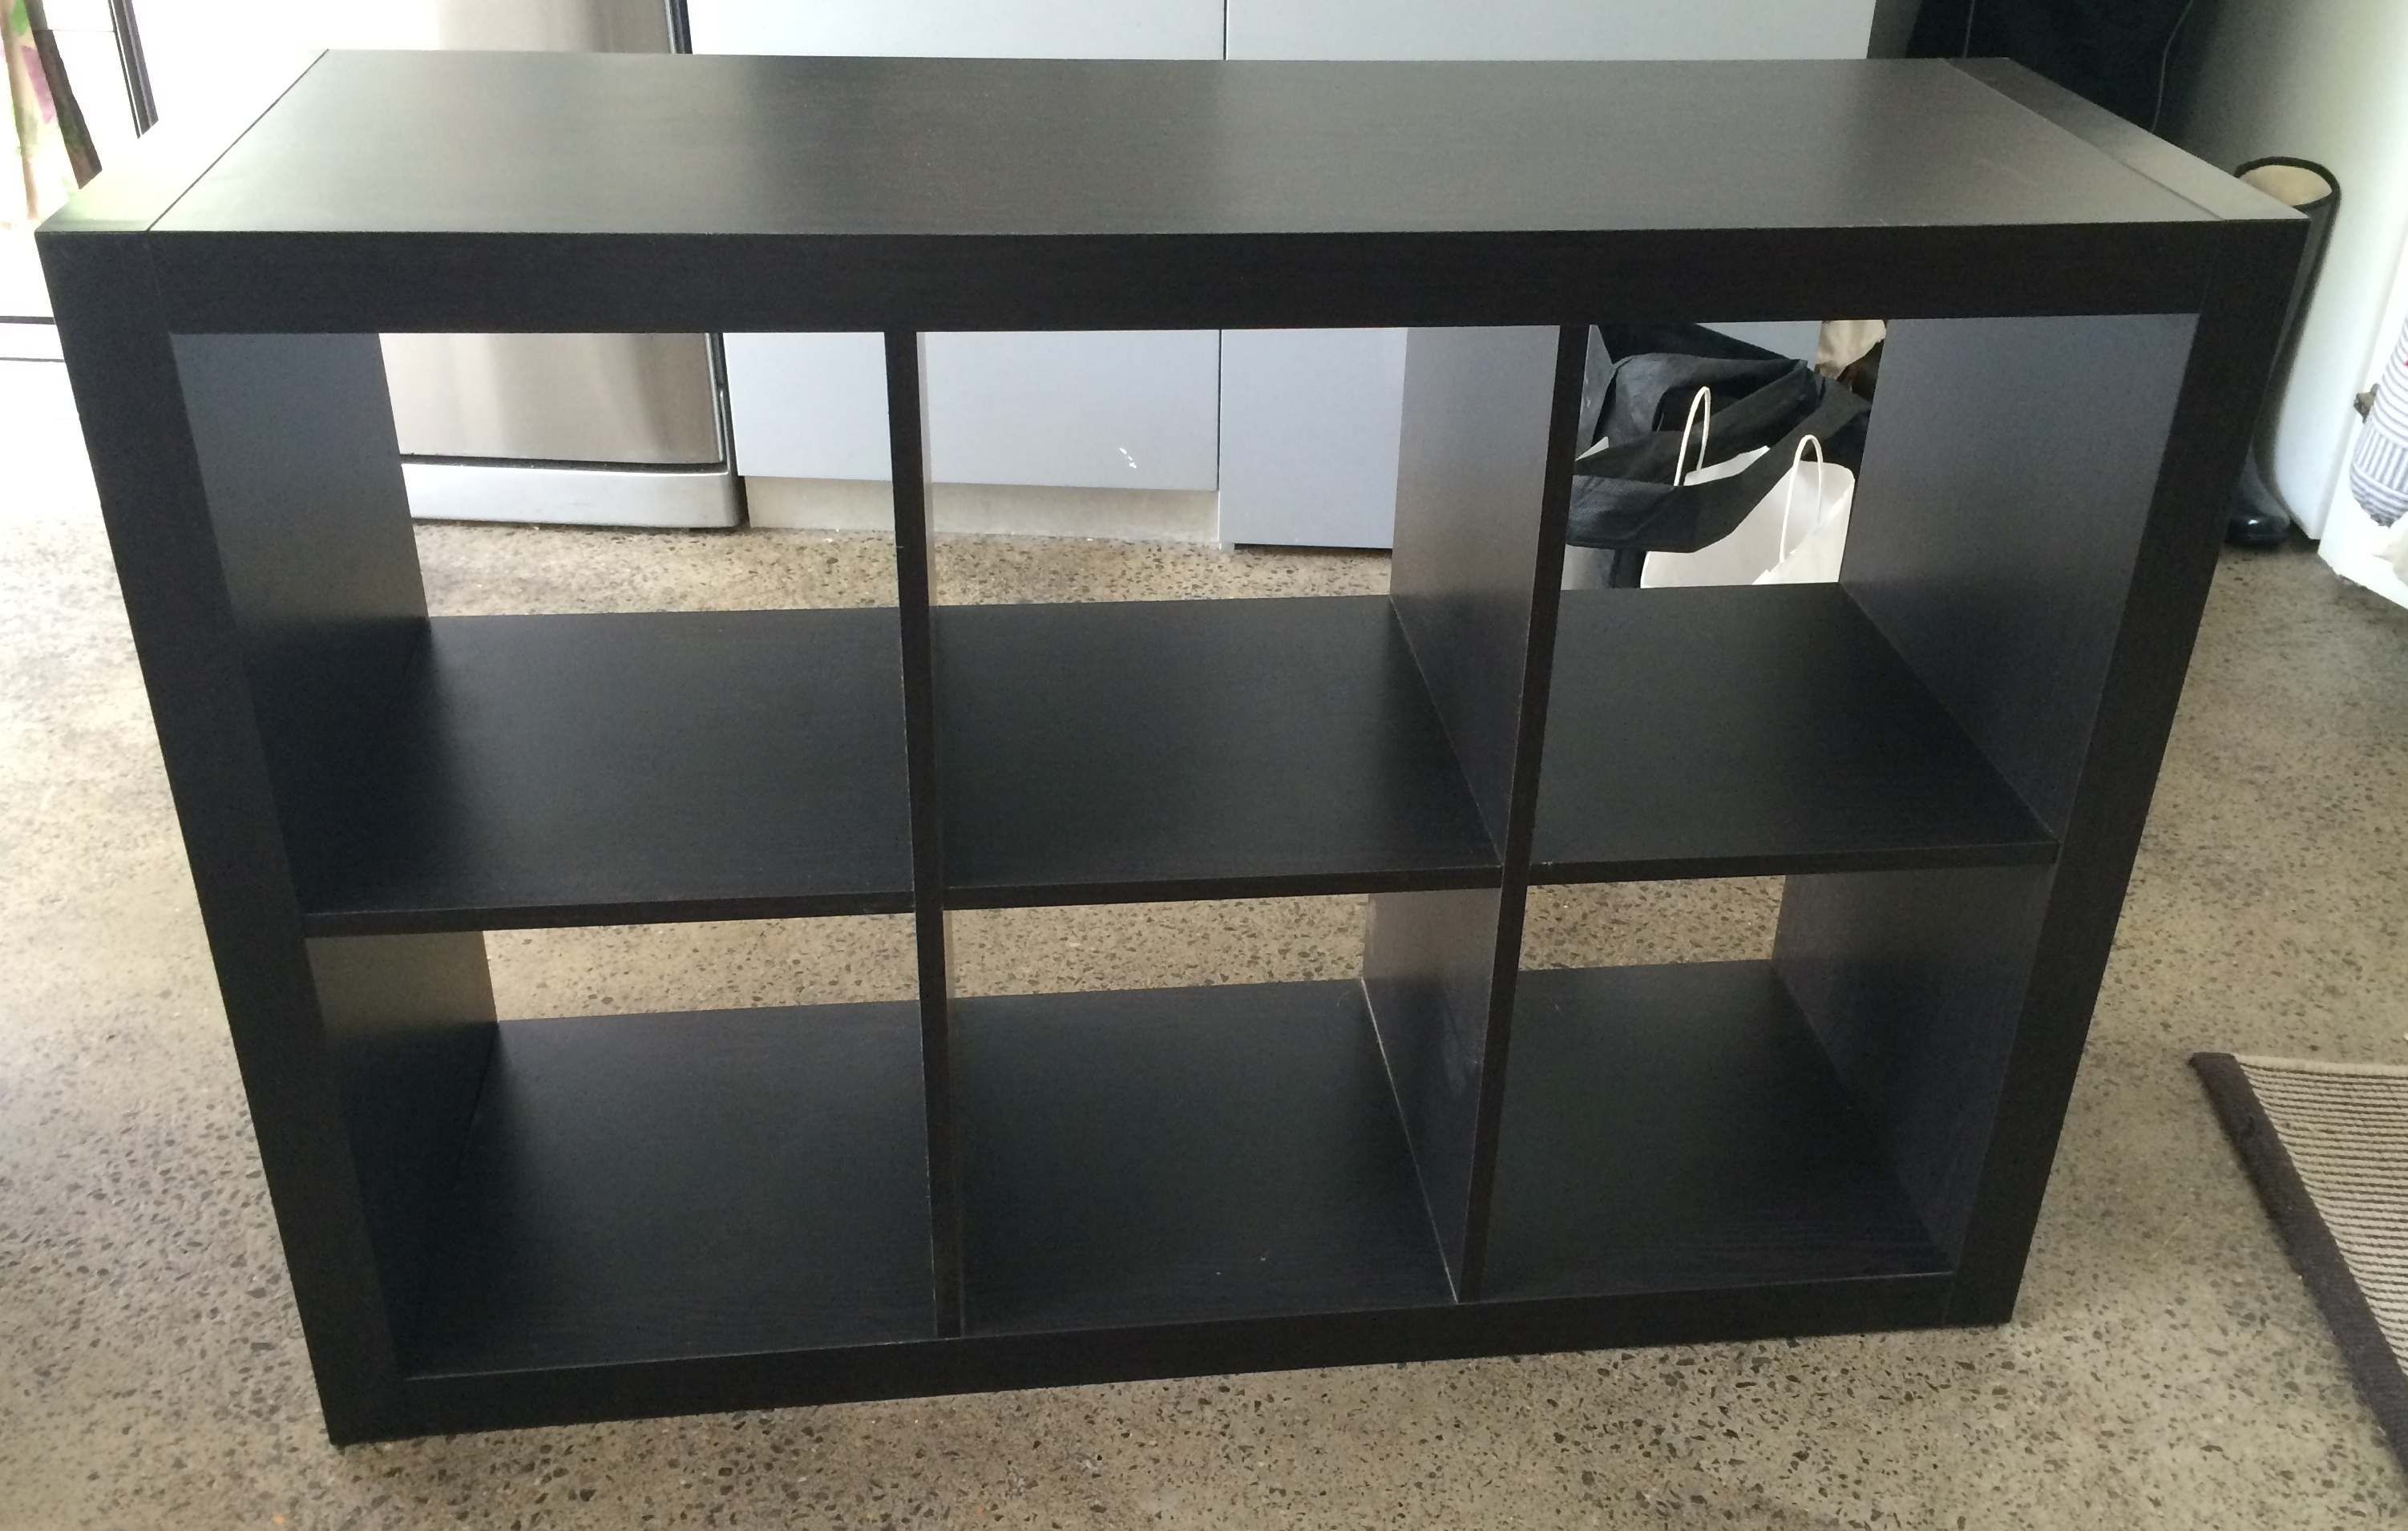 Ikea Expedit Cut In Half Shelves Hardly Handy